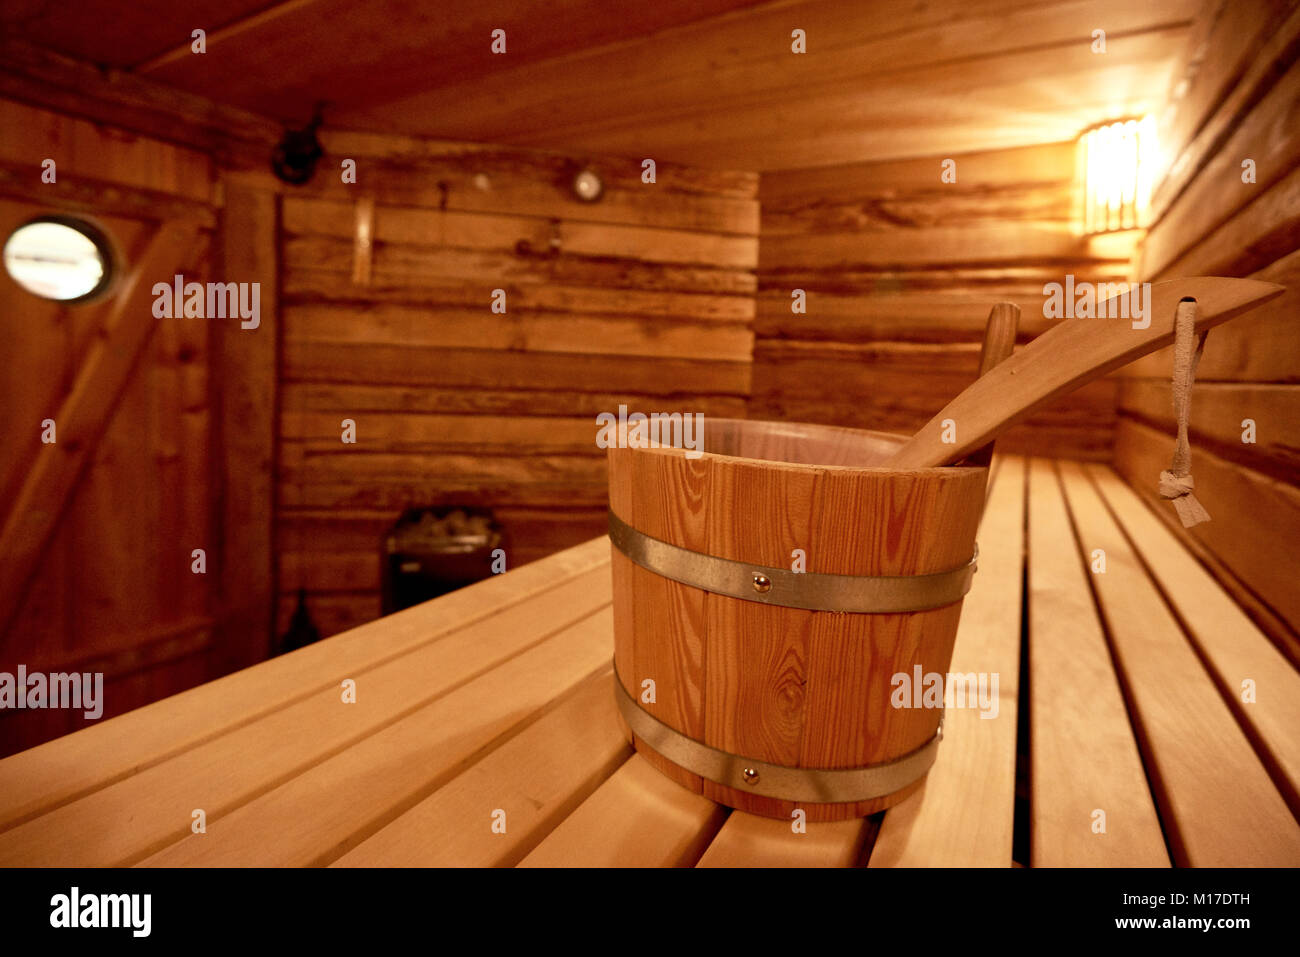 spa, relaxation and healthcare in finnish wooden sauna room - Stock Image